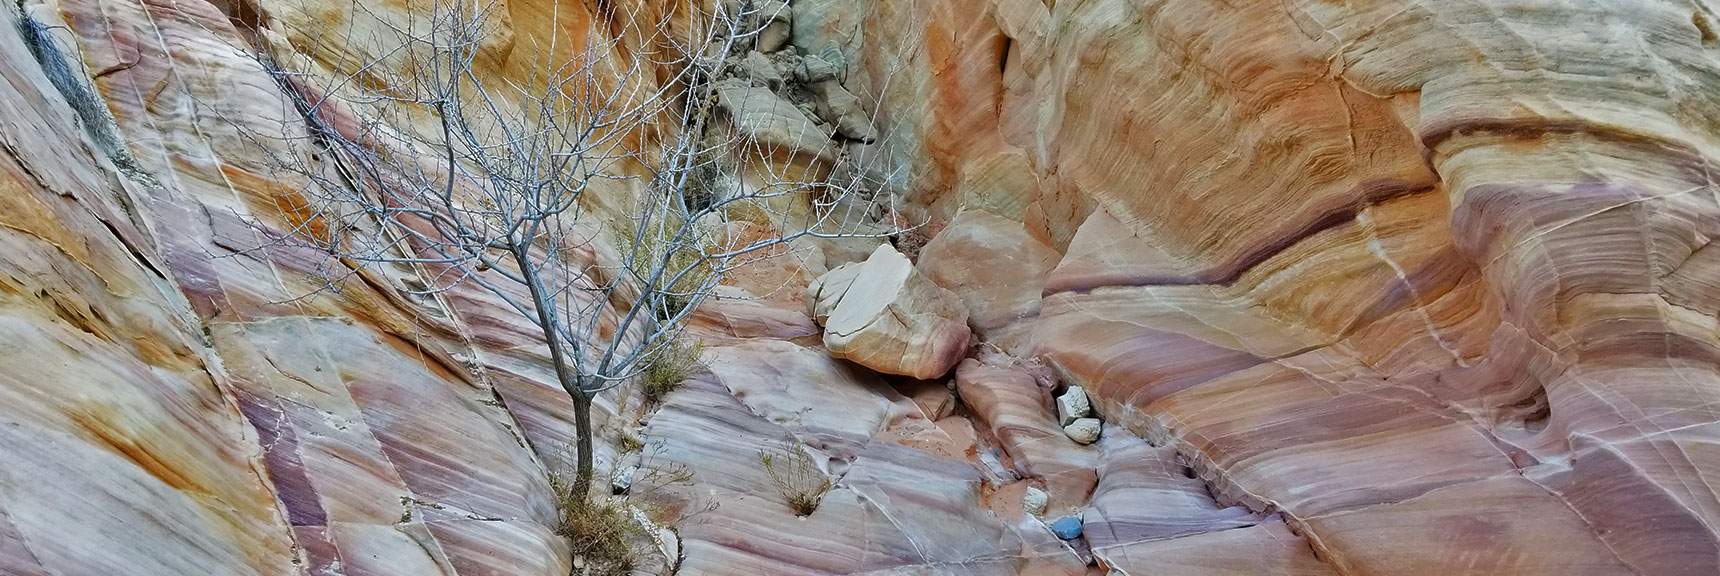 Passing Through Firewave Rocks While Descending Through the Northern Canyon Wash on Prospect Trail in Valley of Fire State Park, Nevada Prospect Trail in Valley of Fire State Park, Nevada